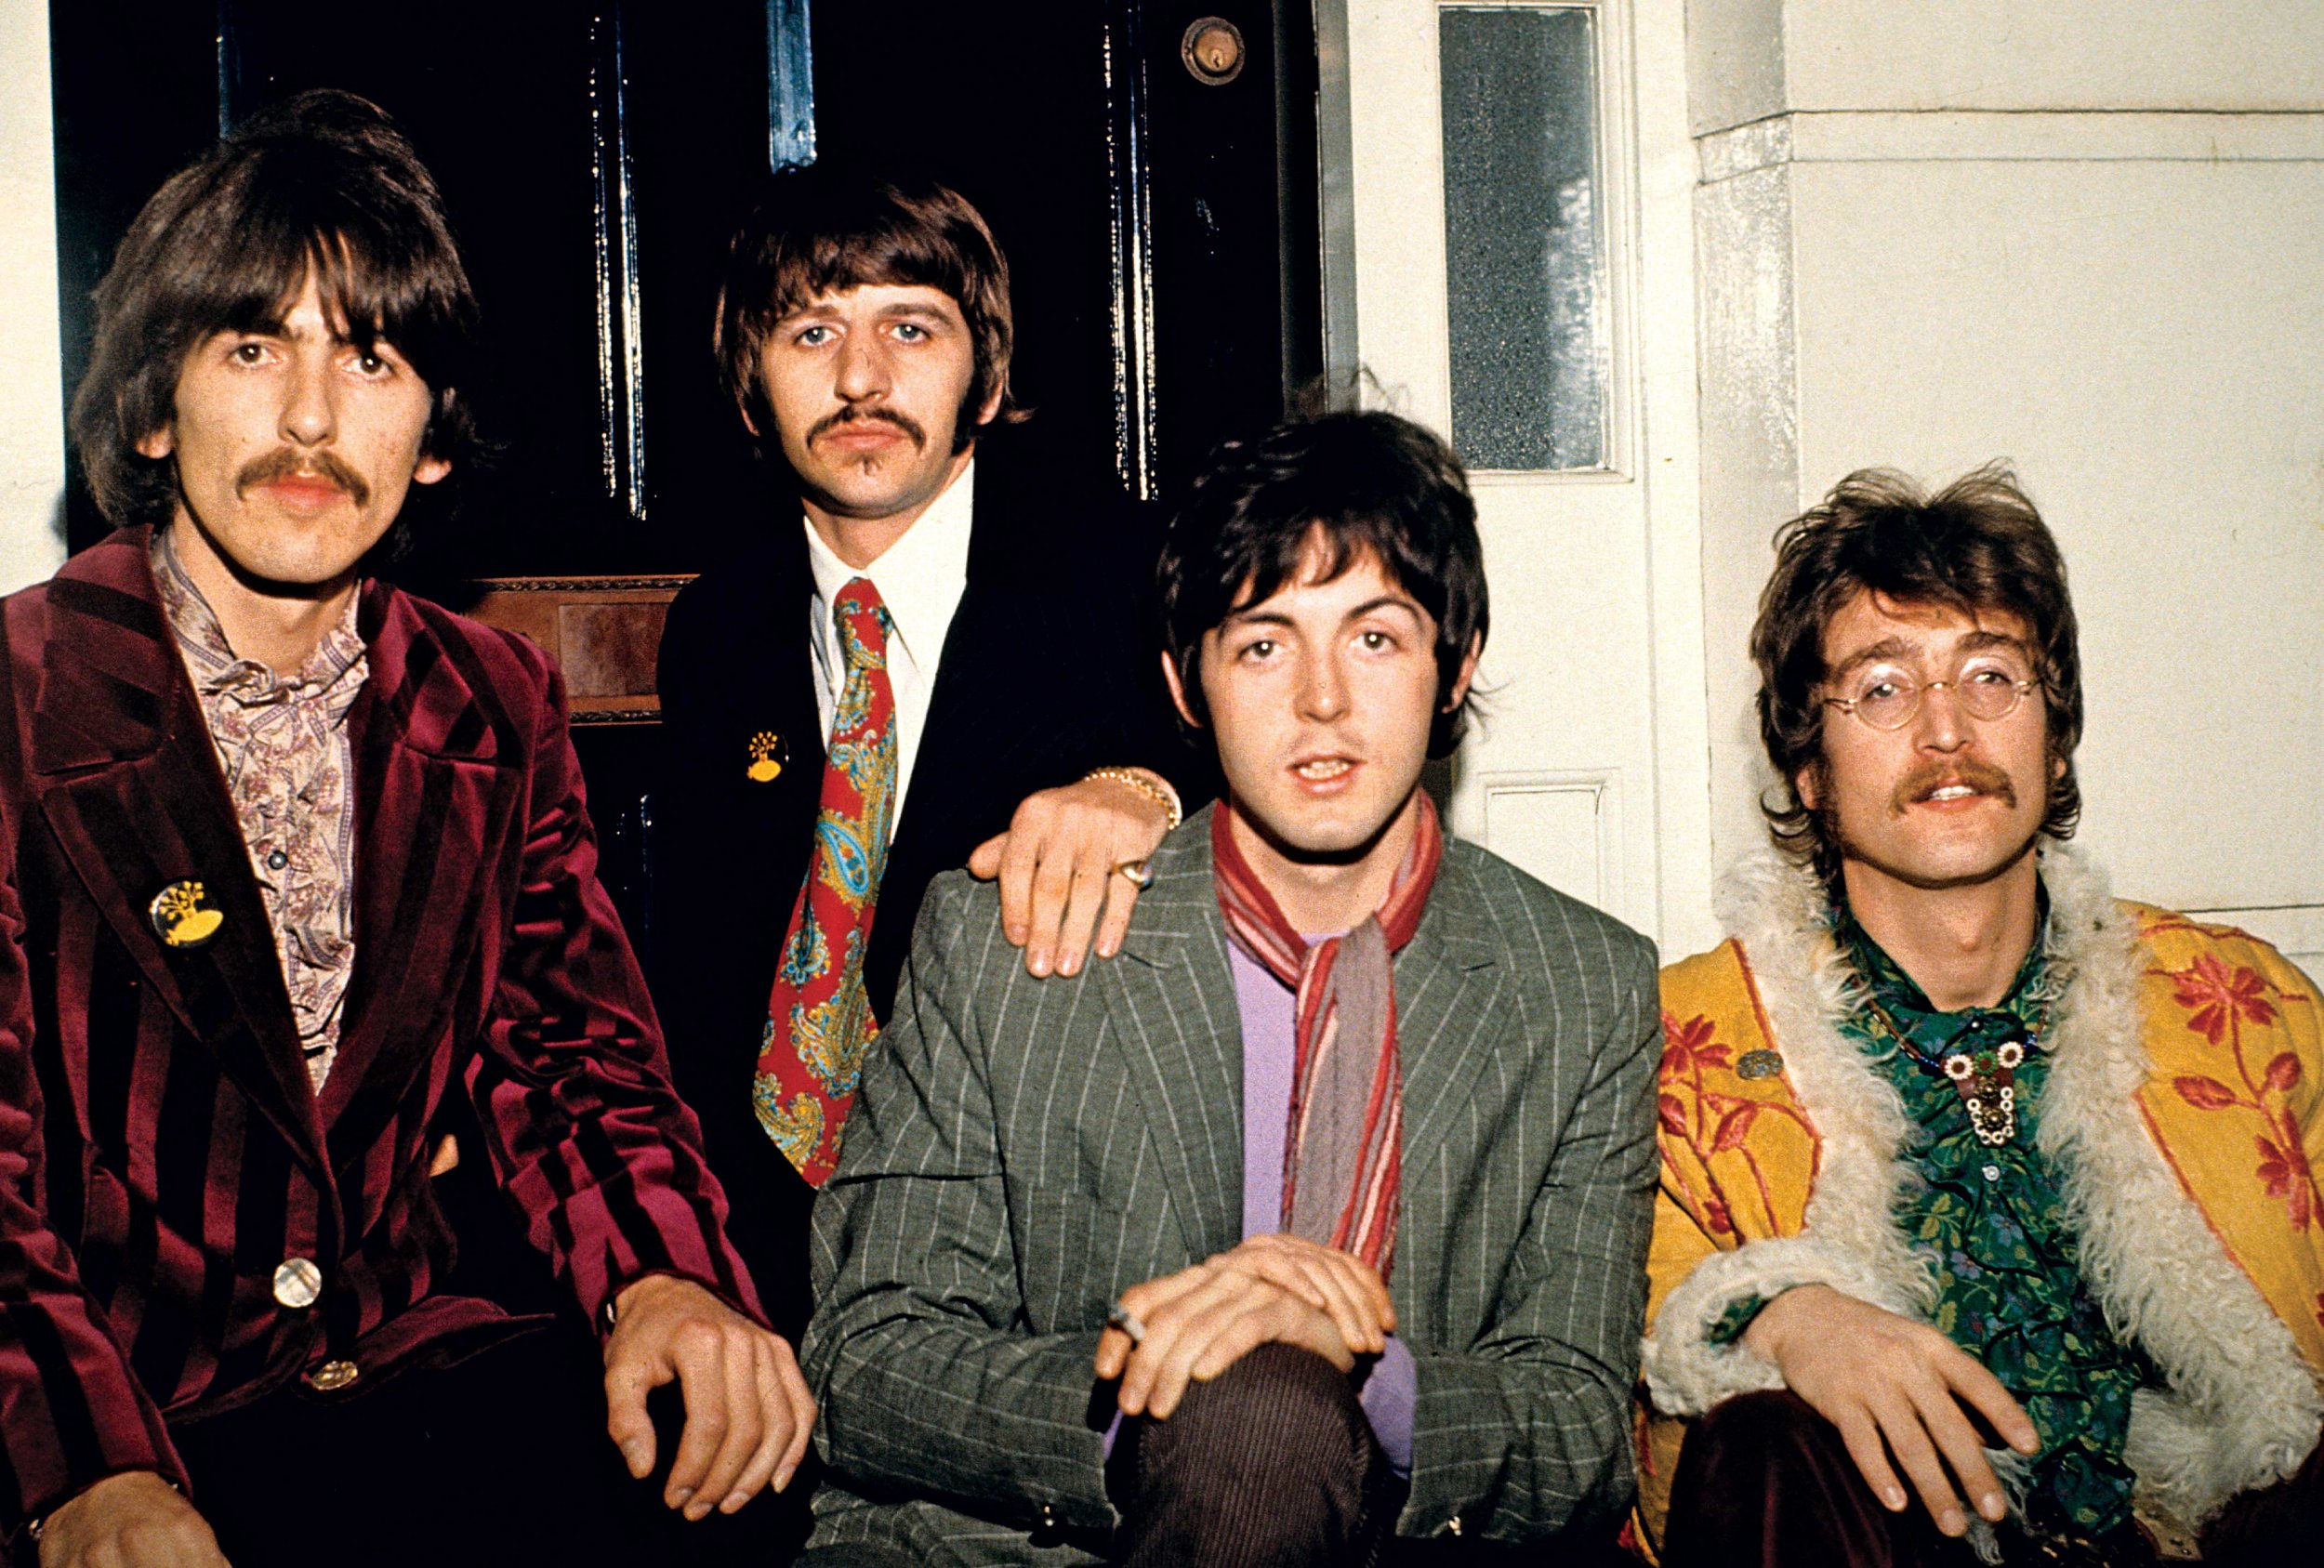 The Beatles' 'Sgt. Pepper's Lonely Hearts Club Band' at 50: Why It's Still  Worth Celebrating